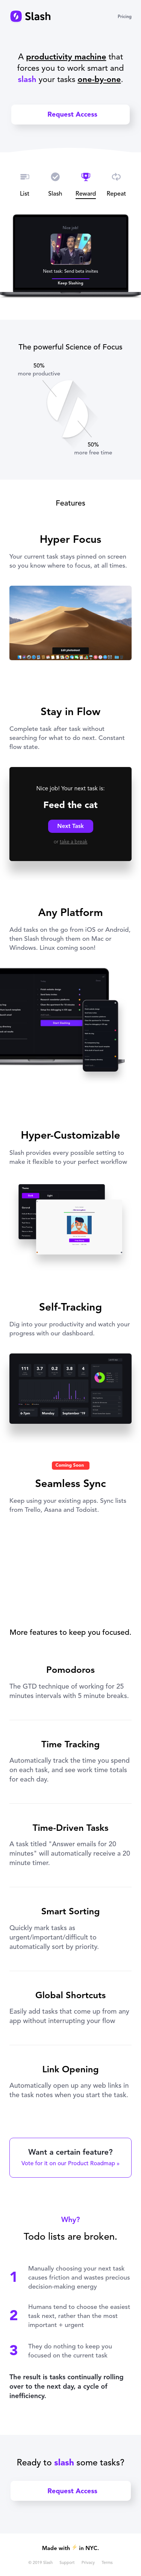 Example of Design for Computers & Electronics, Software, Business & Productivity Software, Mobile Landing Page by getslash.co | Mobile Landing Page Design